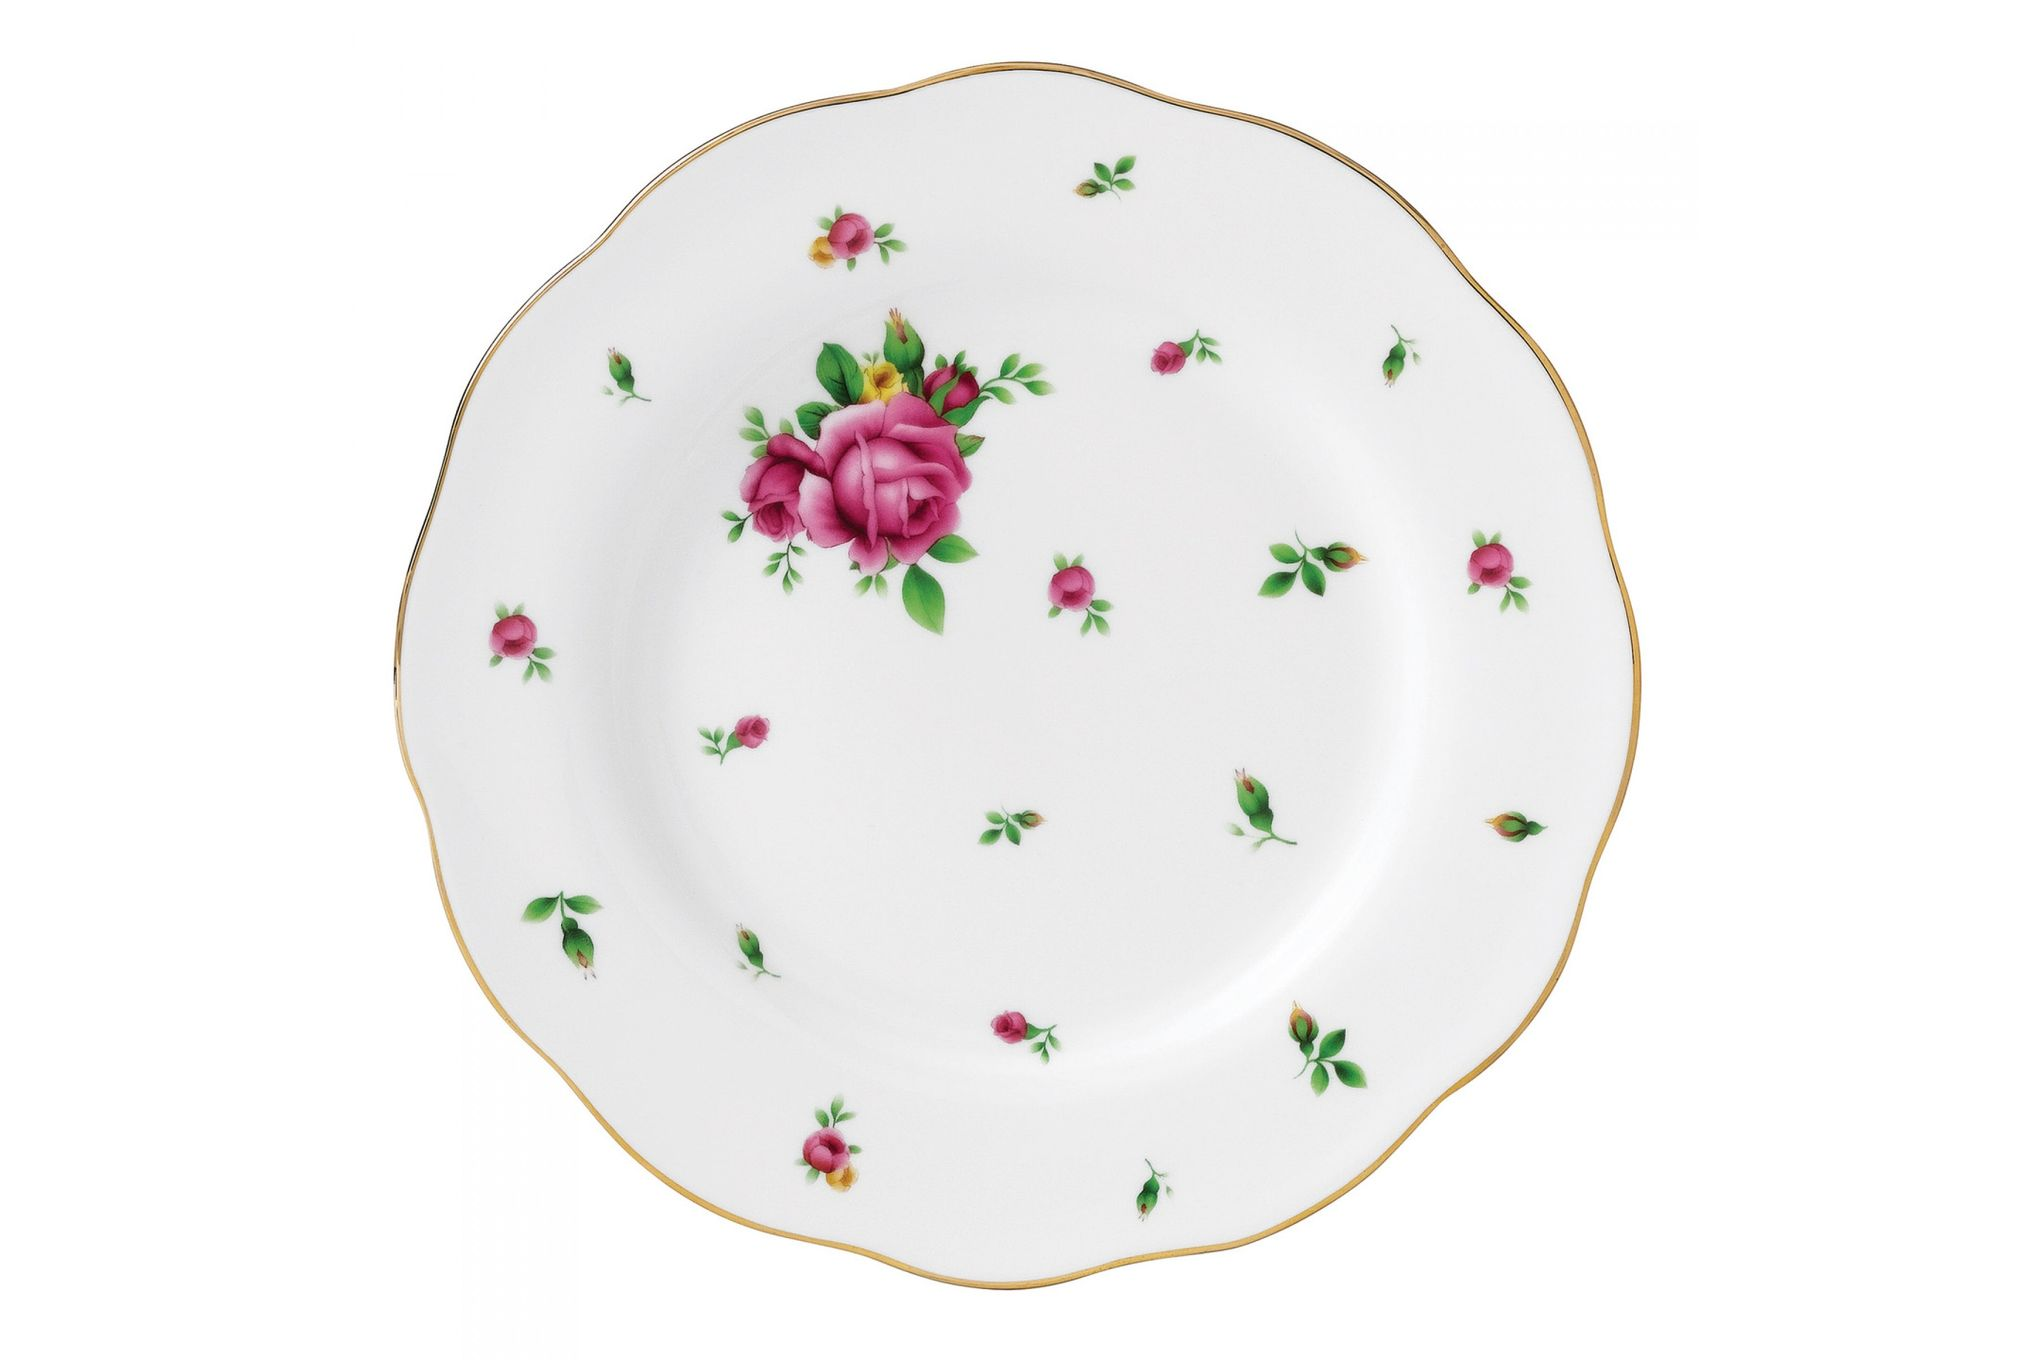 Royal Albert New Country Roses White Side Plate 20cm thumb 1